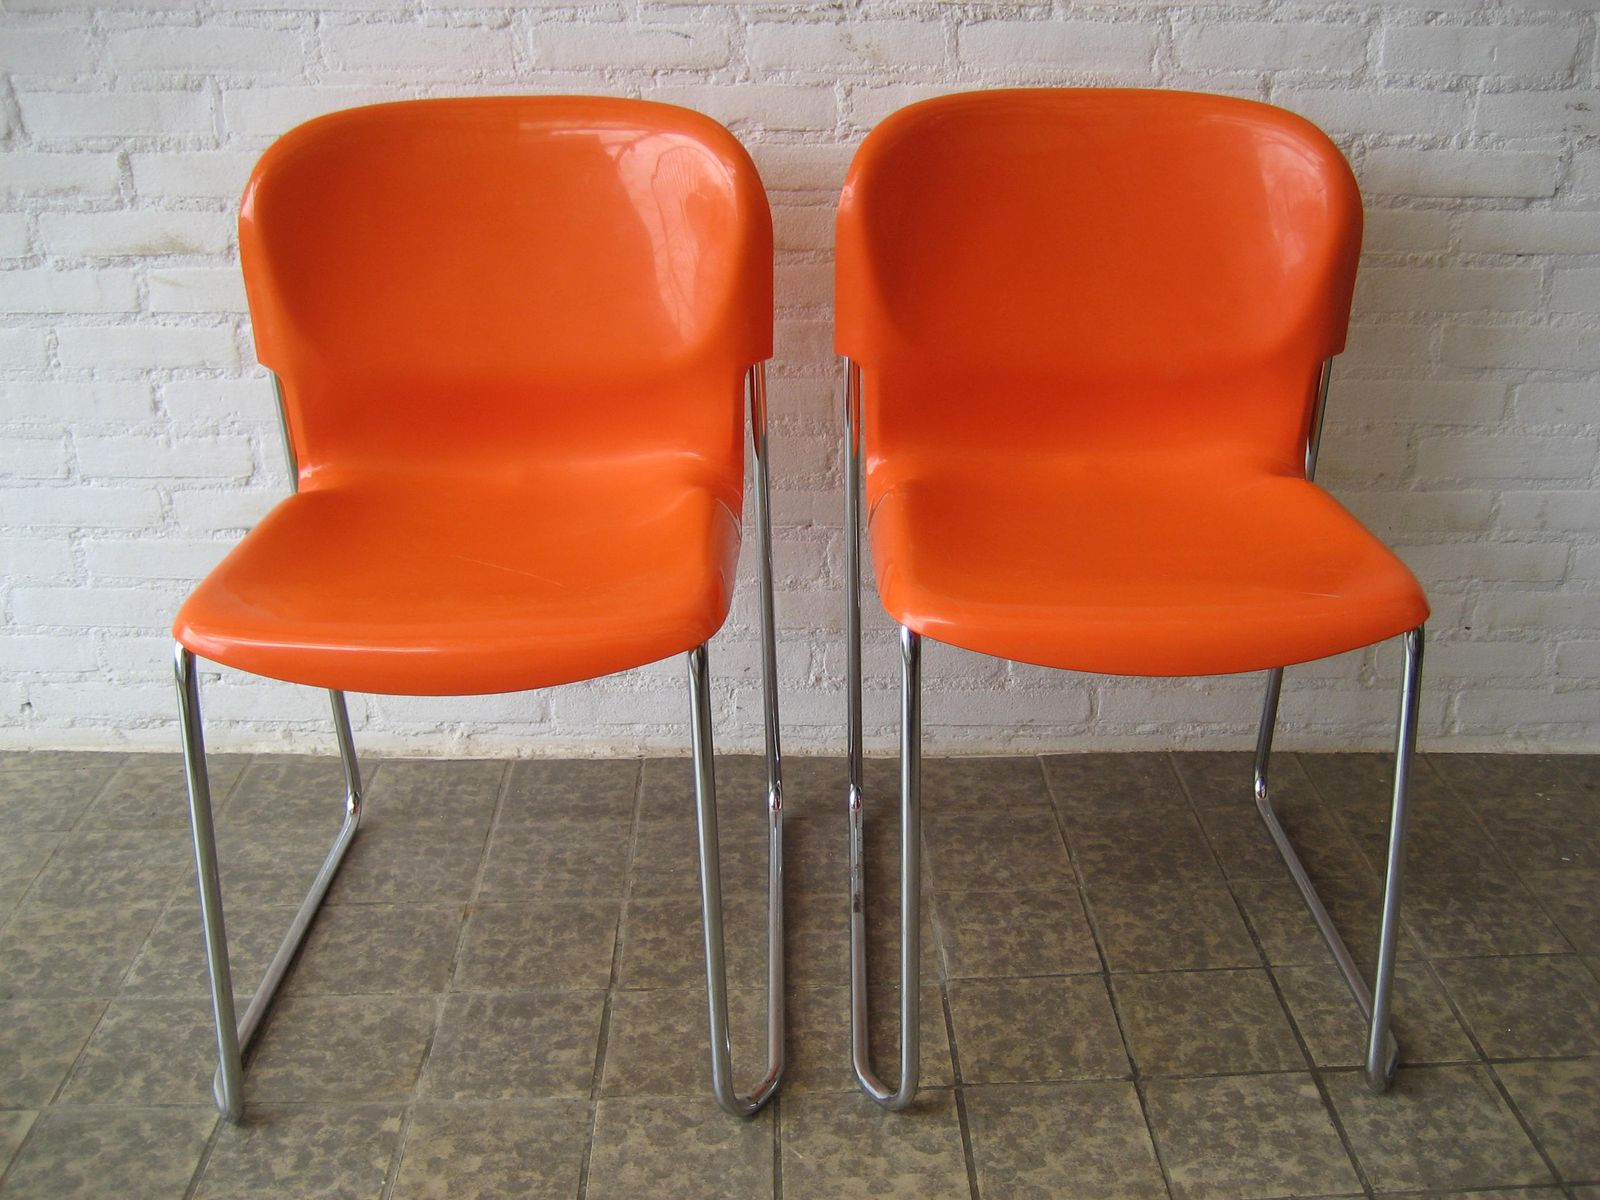 Swing Chairs by Gerd Lange for Drabertï ¿ Set of 2 for sale at Pamono